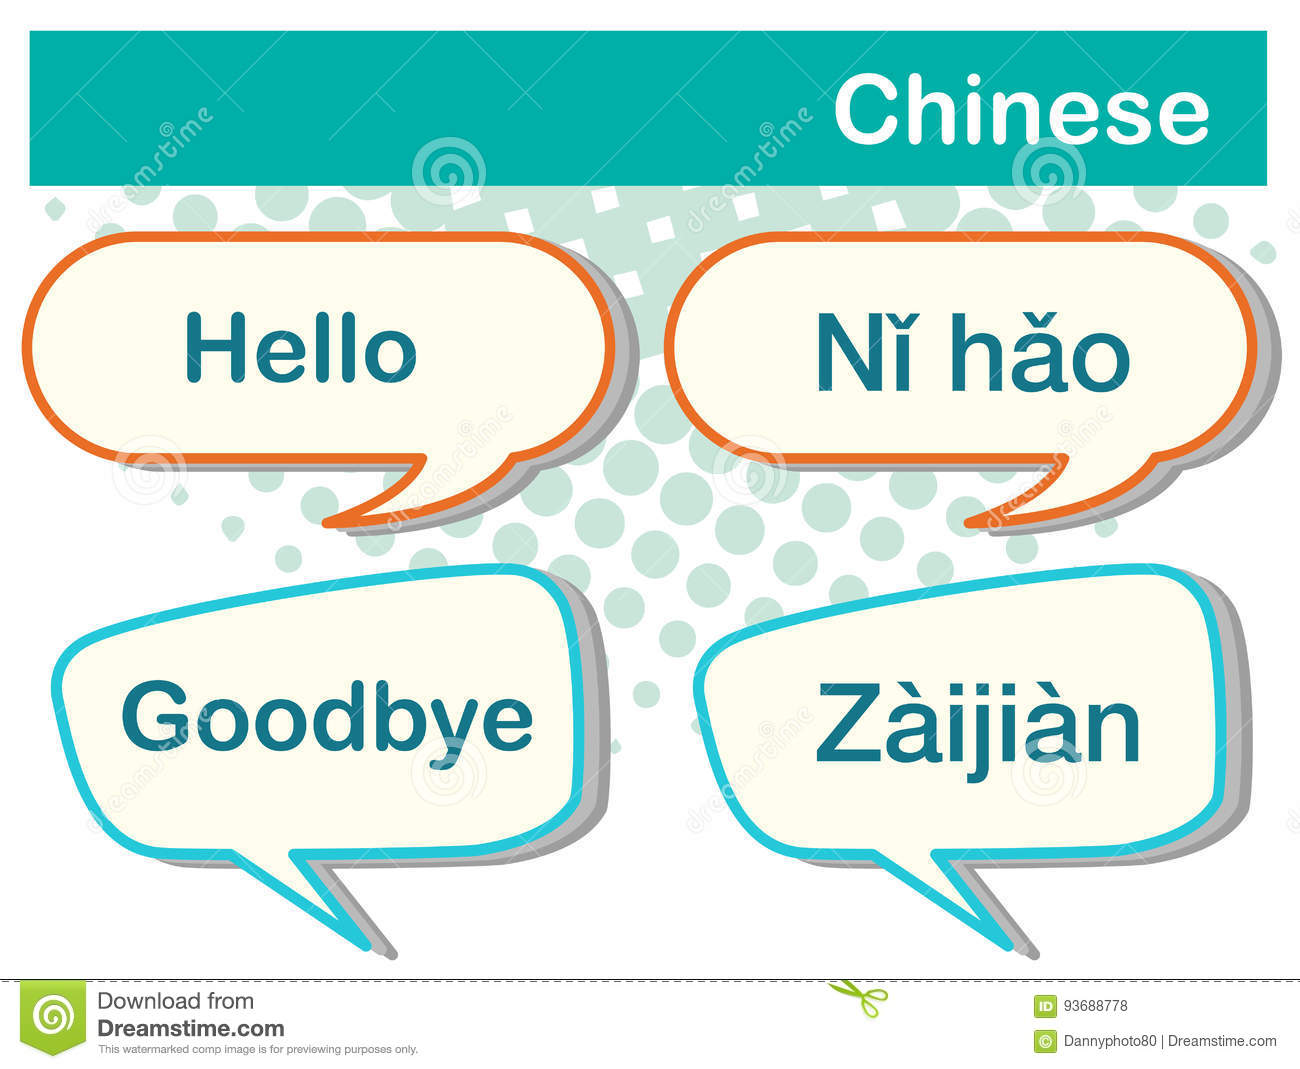 Greeting words in chinese language stock vector illustration of download greeting words in chinese language stock vector illustration of series graphic 93688778 m4hsunfo